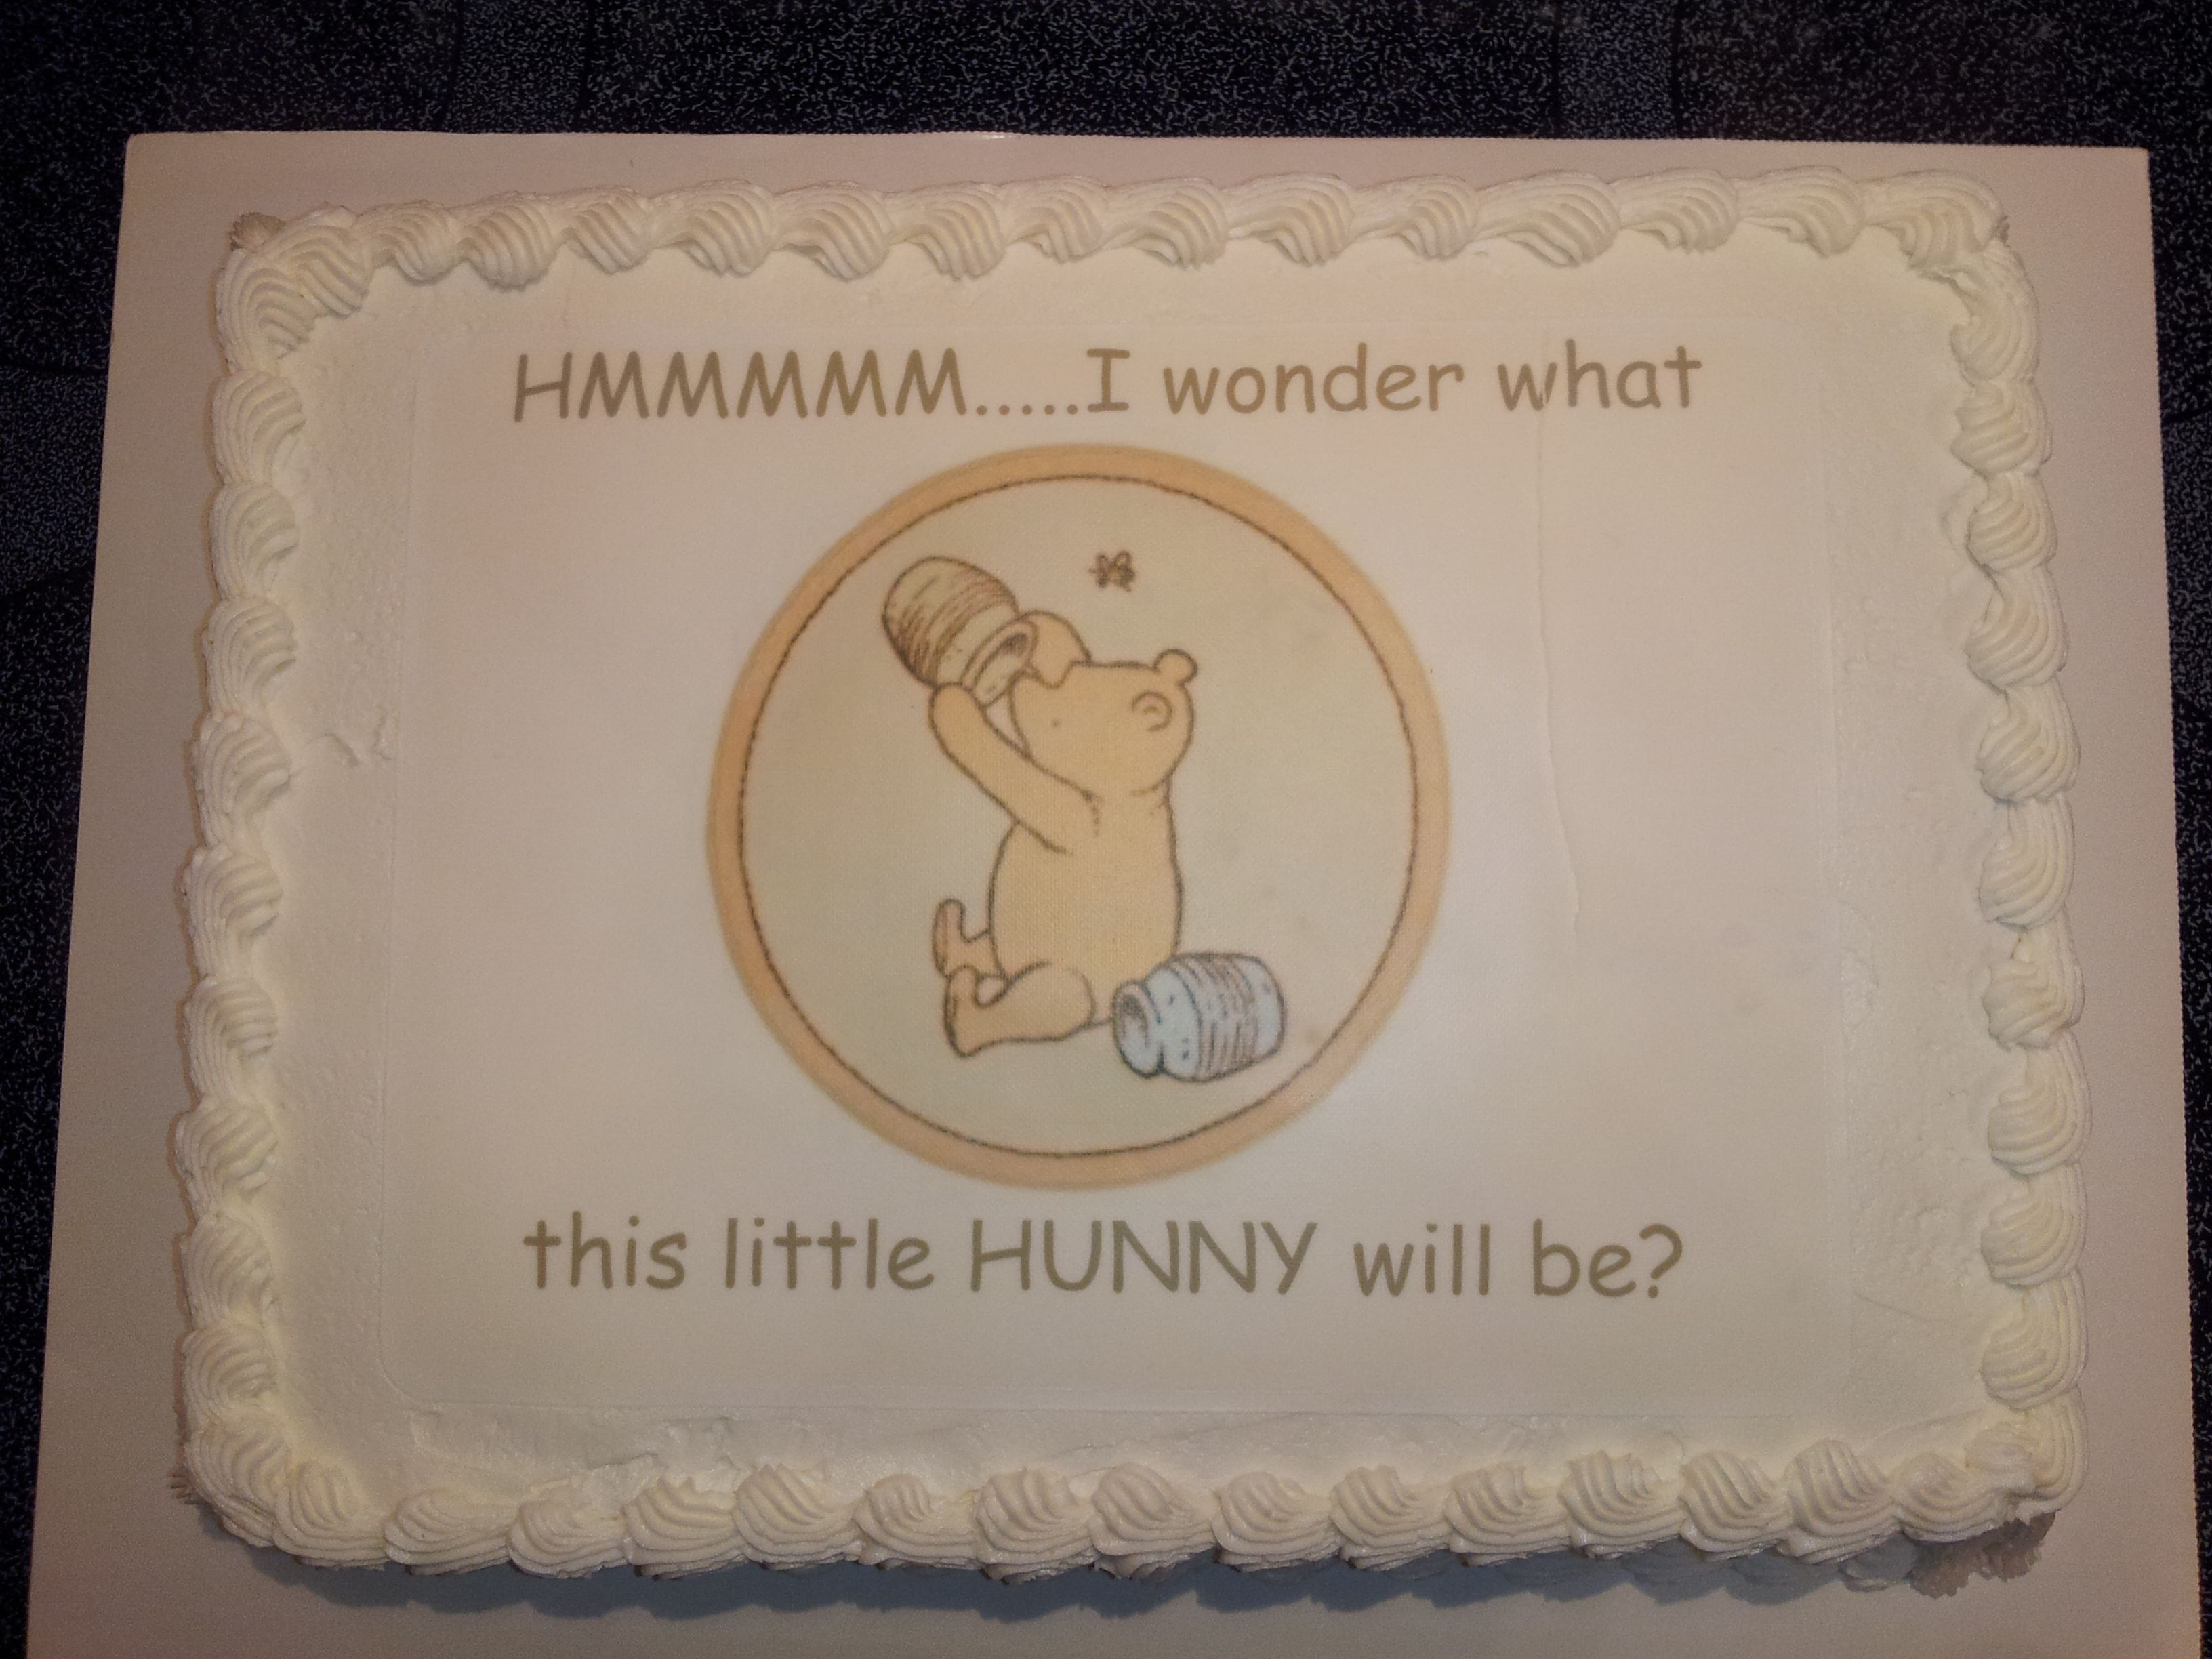 Winnie The Pooh Baby Shower Cakes Cake for baby shower – Winnie the Pooh Birth Announcements